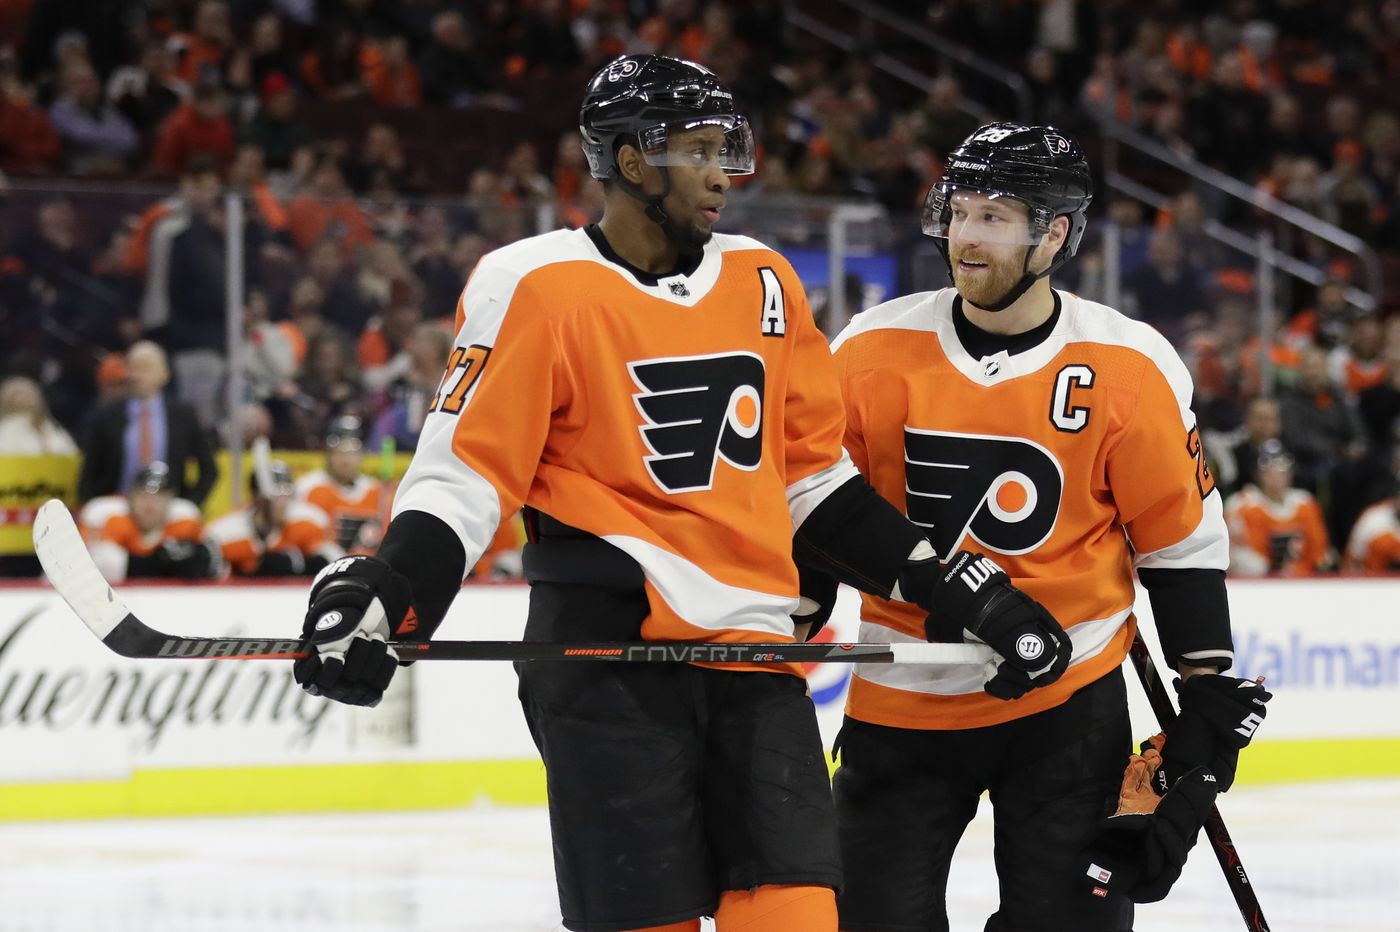 Some Flyers pay their own airfare to get some rest and get around NHL travel ban during the holidays